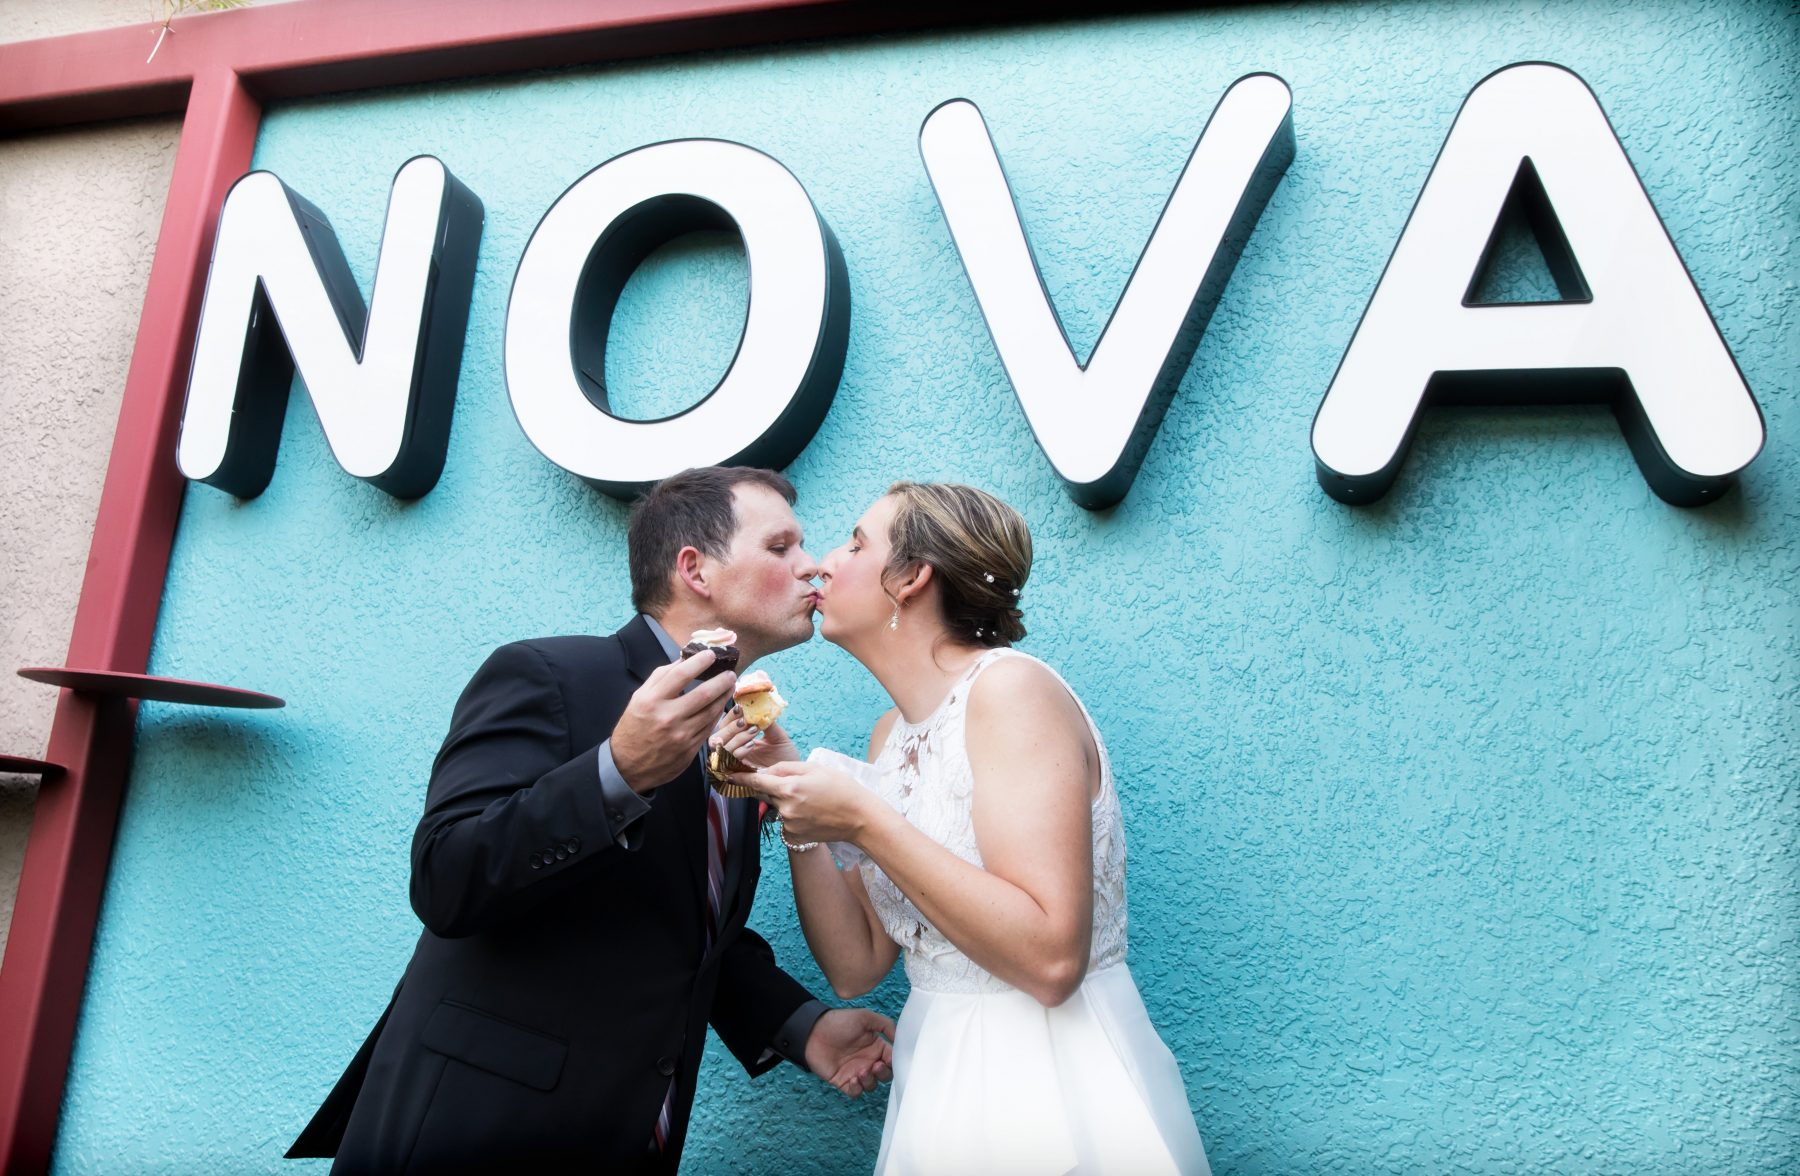 Newlyweds enjoy cupcake at NOVA 535 during their vintage St. Petersburg wedding